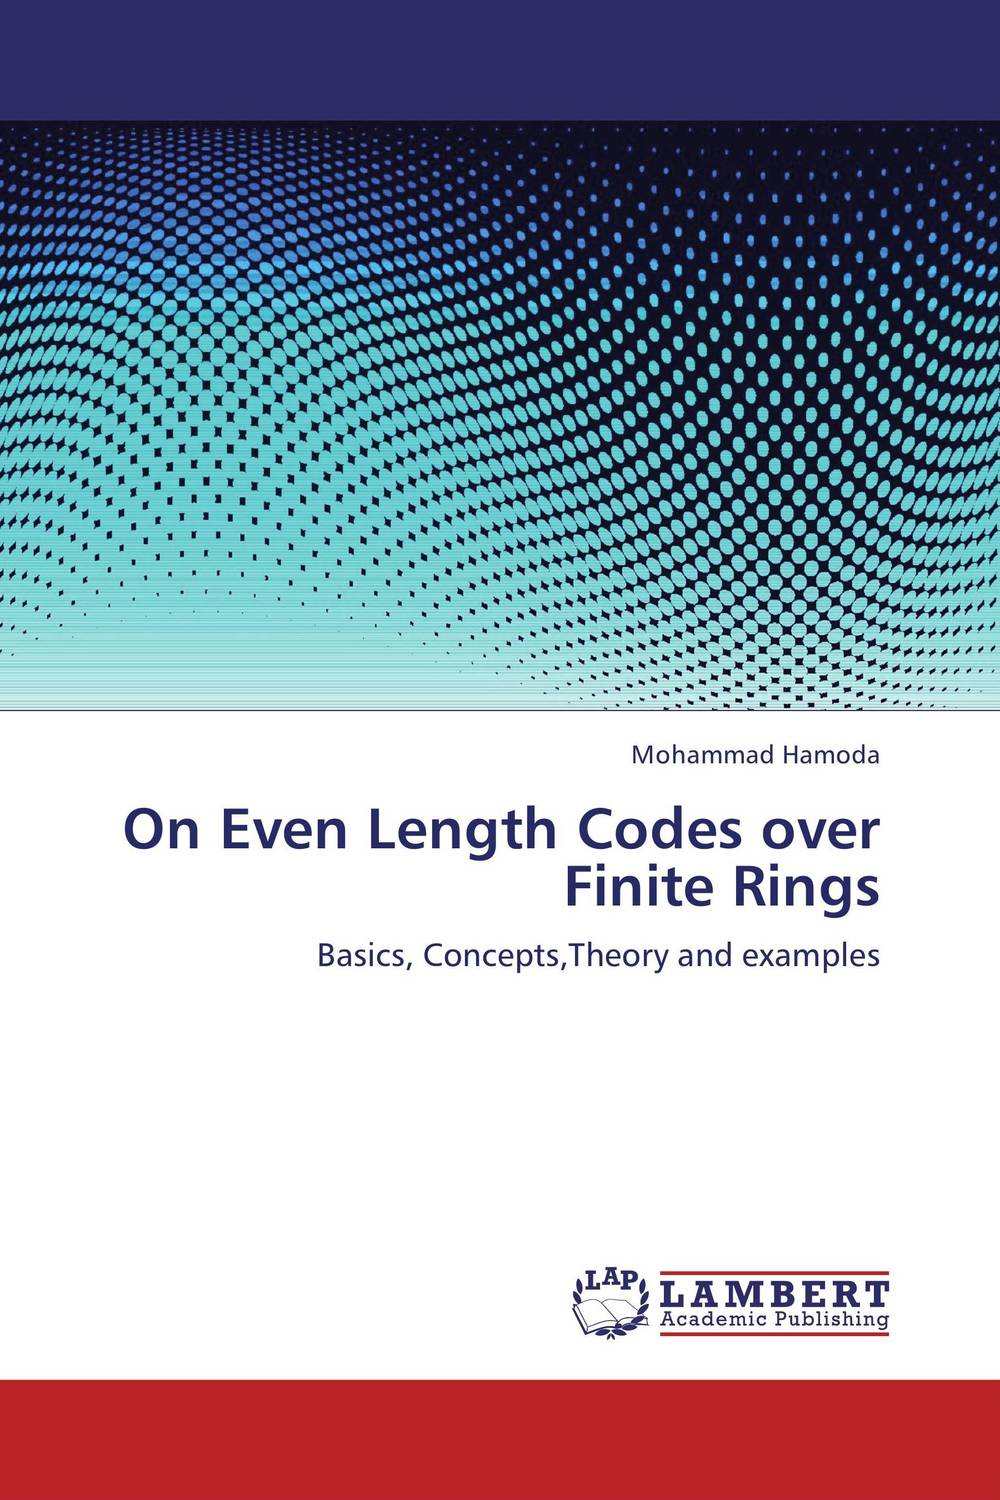 On Even Length Codes over Finite Rings peter block stewardship choosing service over self interest